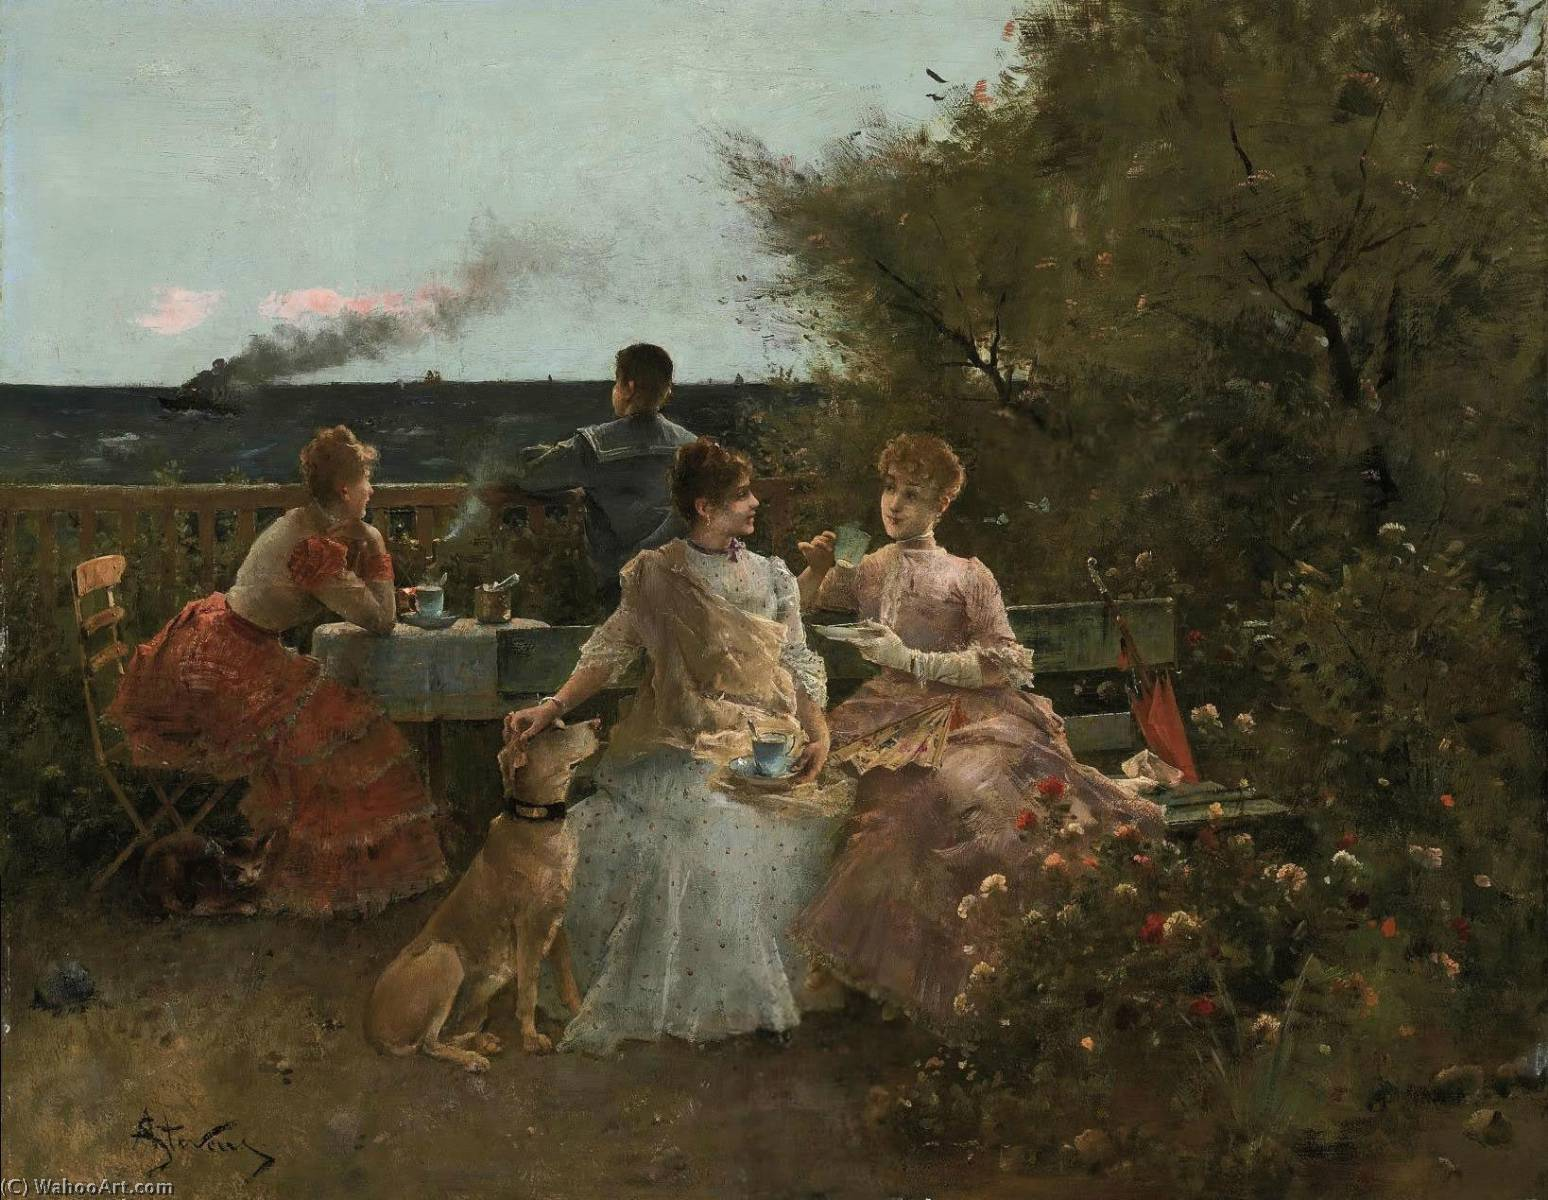 Ladies on a Terrace, Normandy by Alfred Émile Léopold Stevens (1823-1906) | Art Reproductions Alfred Émile Léopold Stevens | WahooArt.com